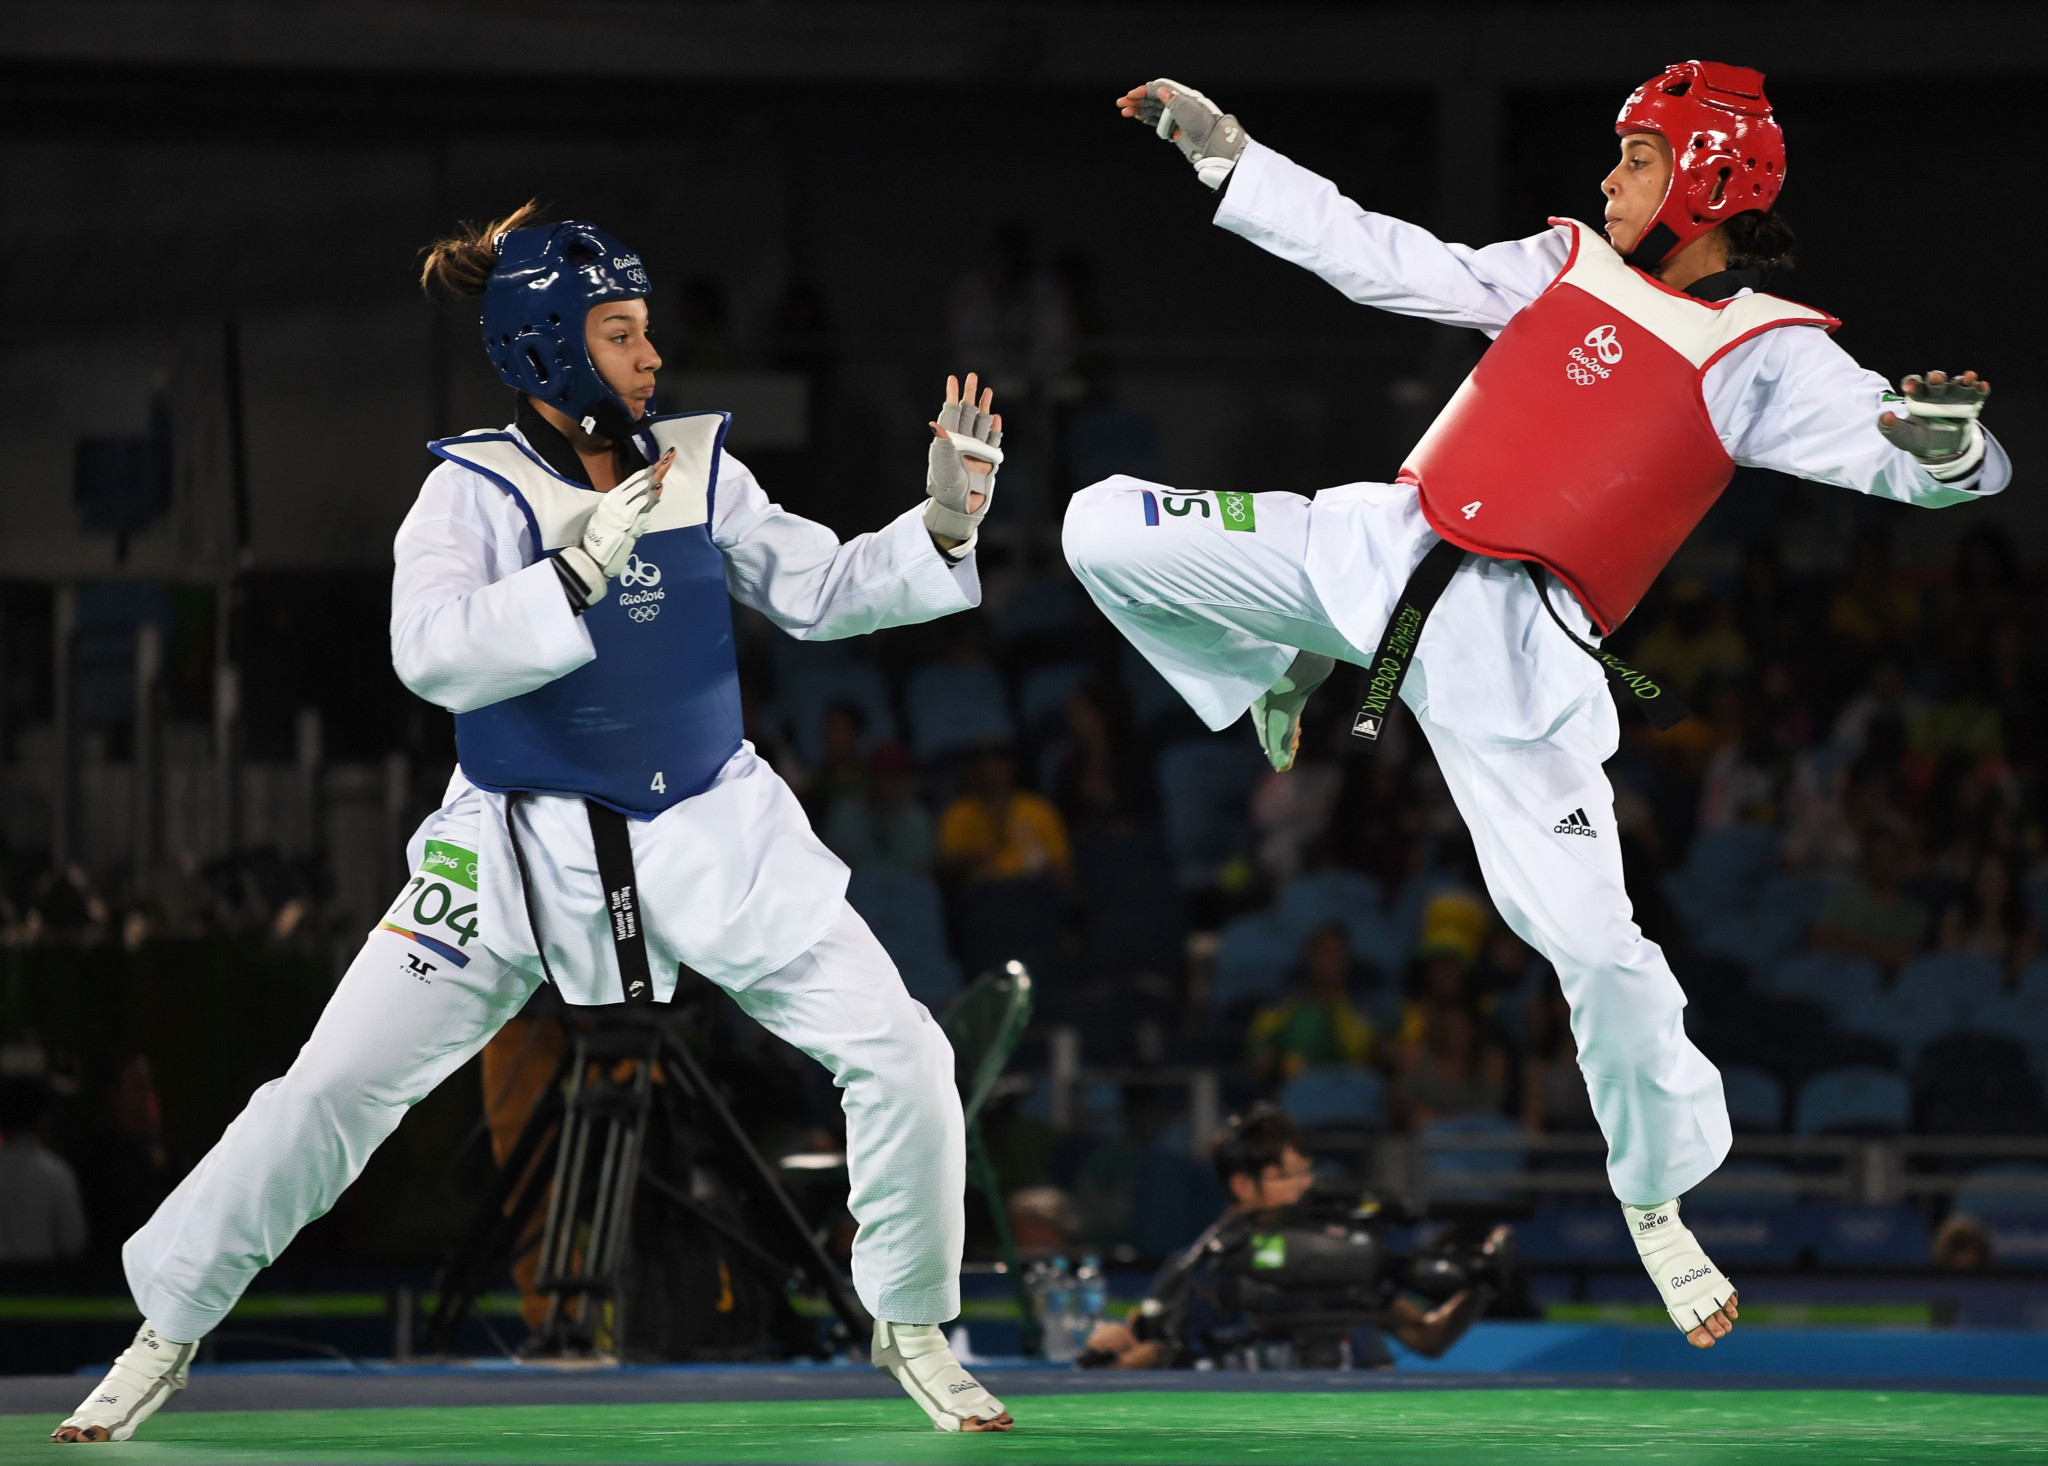 USA Taekwondo are hoping to improve their international performances in time for Los Angeles 2028 ©Getty Images